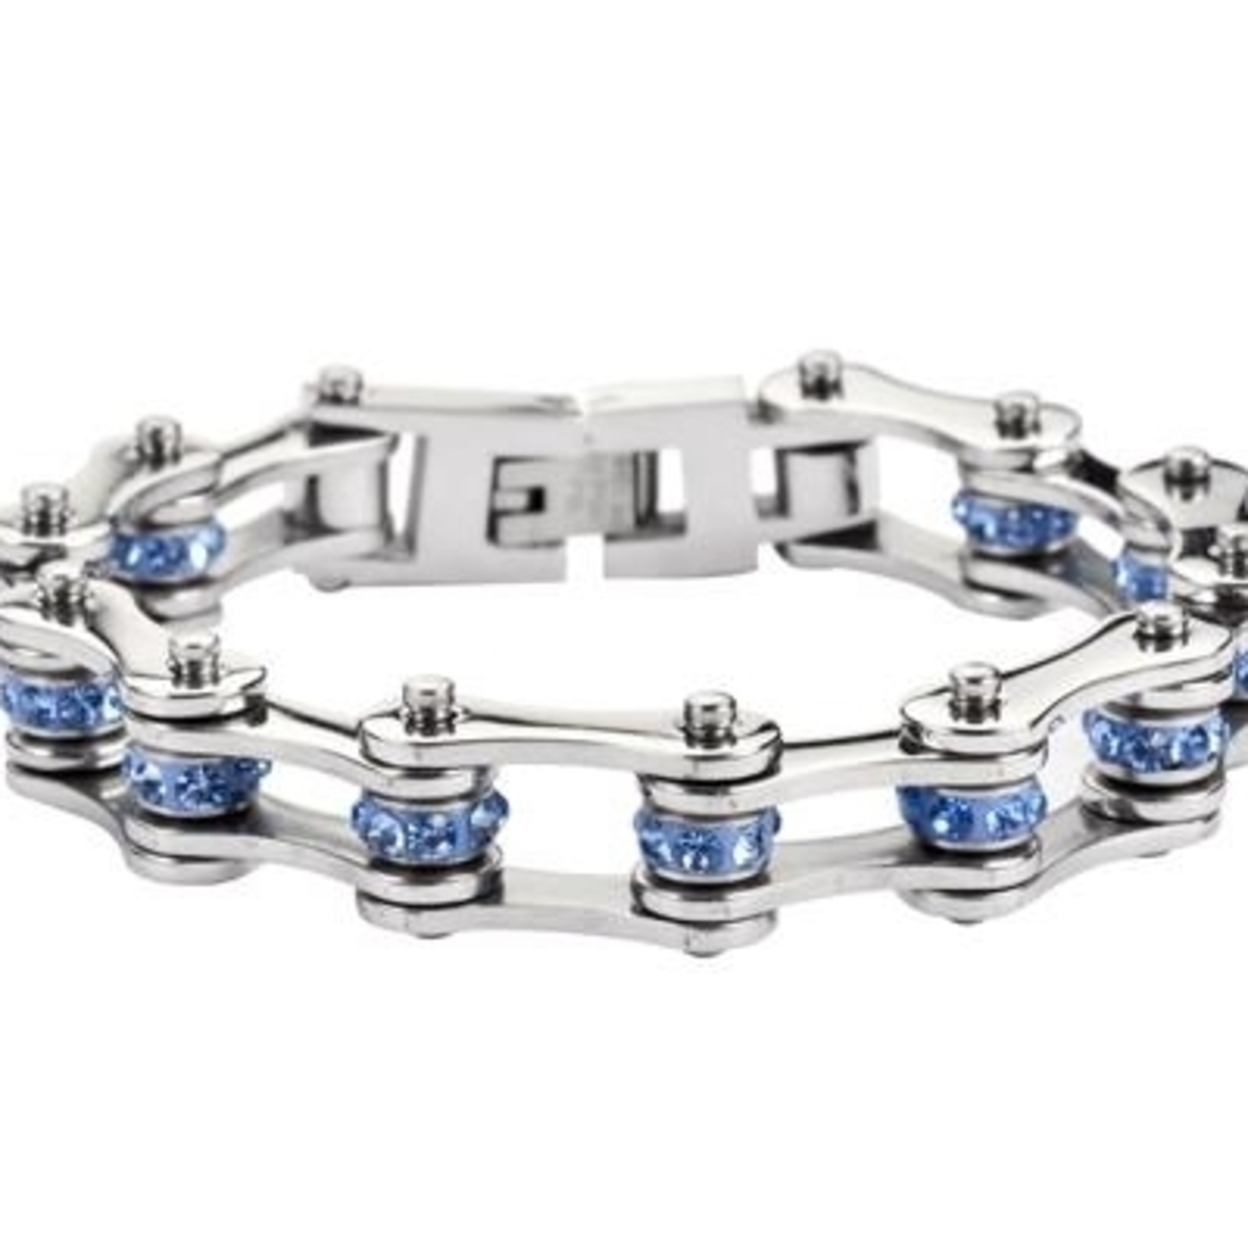 """Sk1205 1/2\"""" Wide All Stainless With Blue Crystal Centers Stainless Steel Motorcycle Bike Chain Bracelet - 7.25 59d561d8c98fc4050d0e1449"""